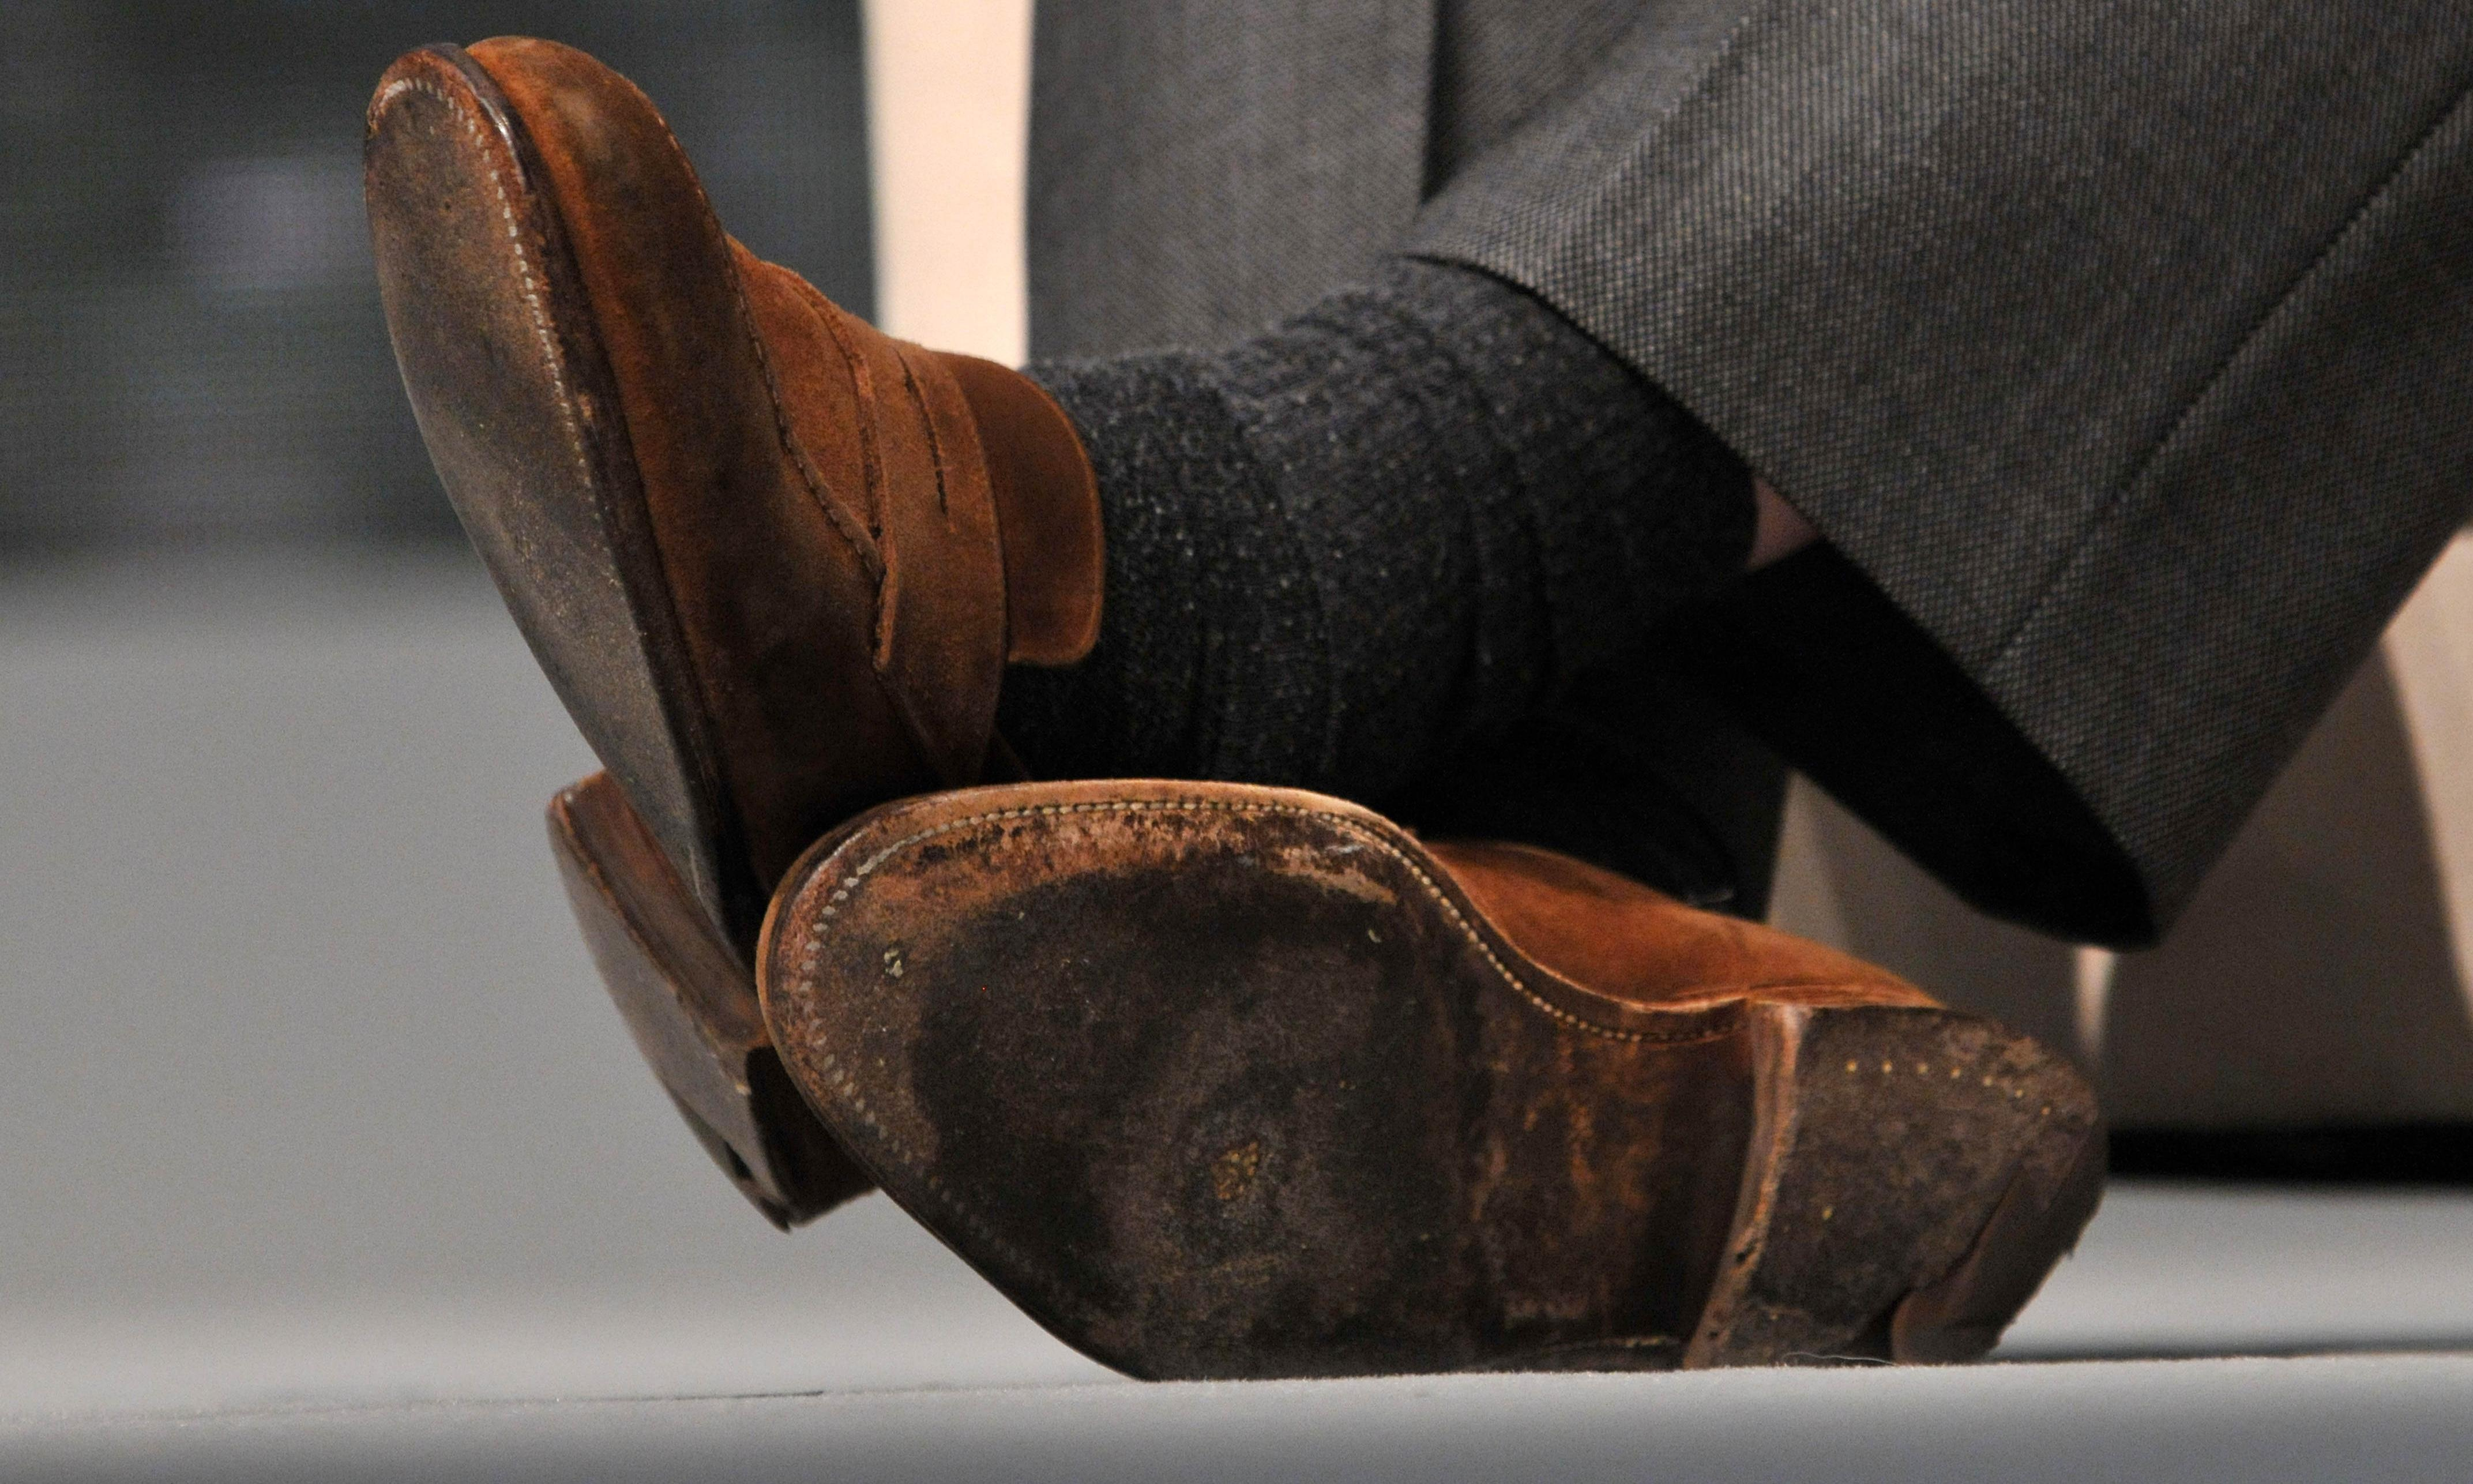 Why does the City hate brown shoes?